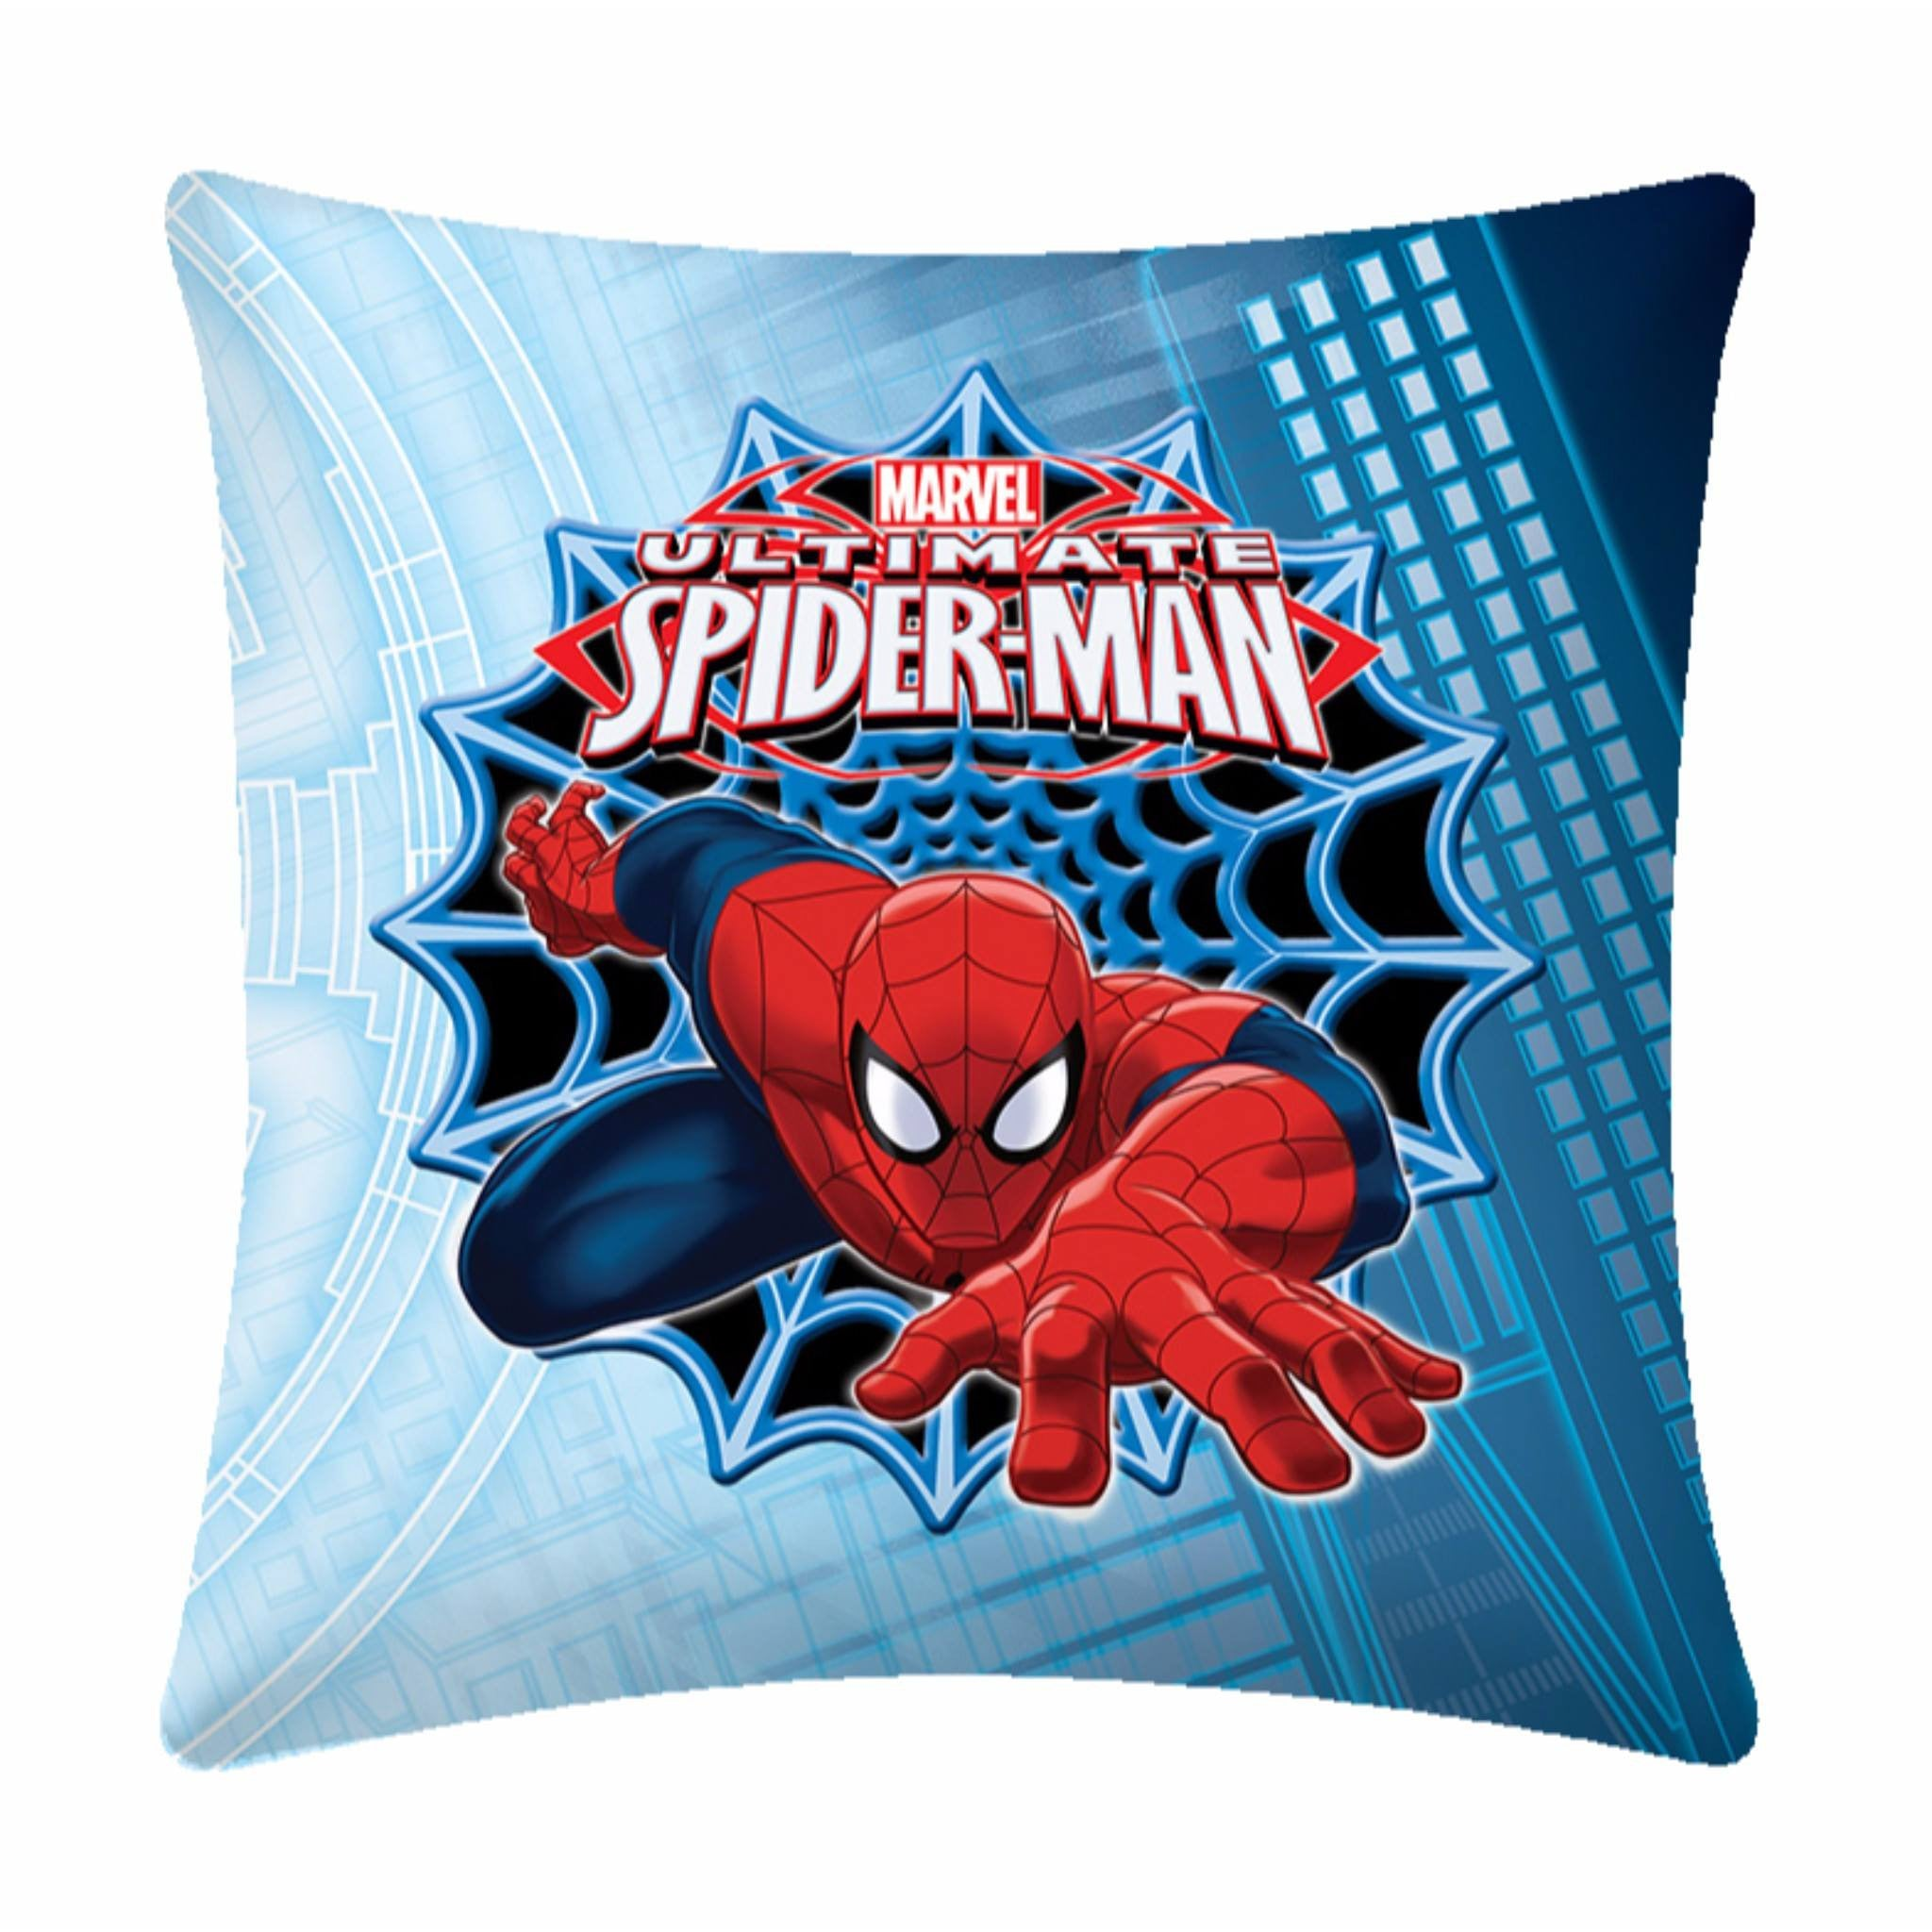 Furious Spiderman Polyester Cartoon Cushion- 1 Piece Pack - Über Urban Cushion